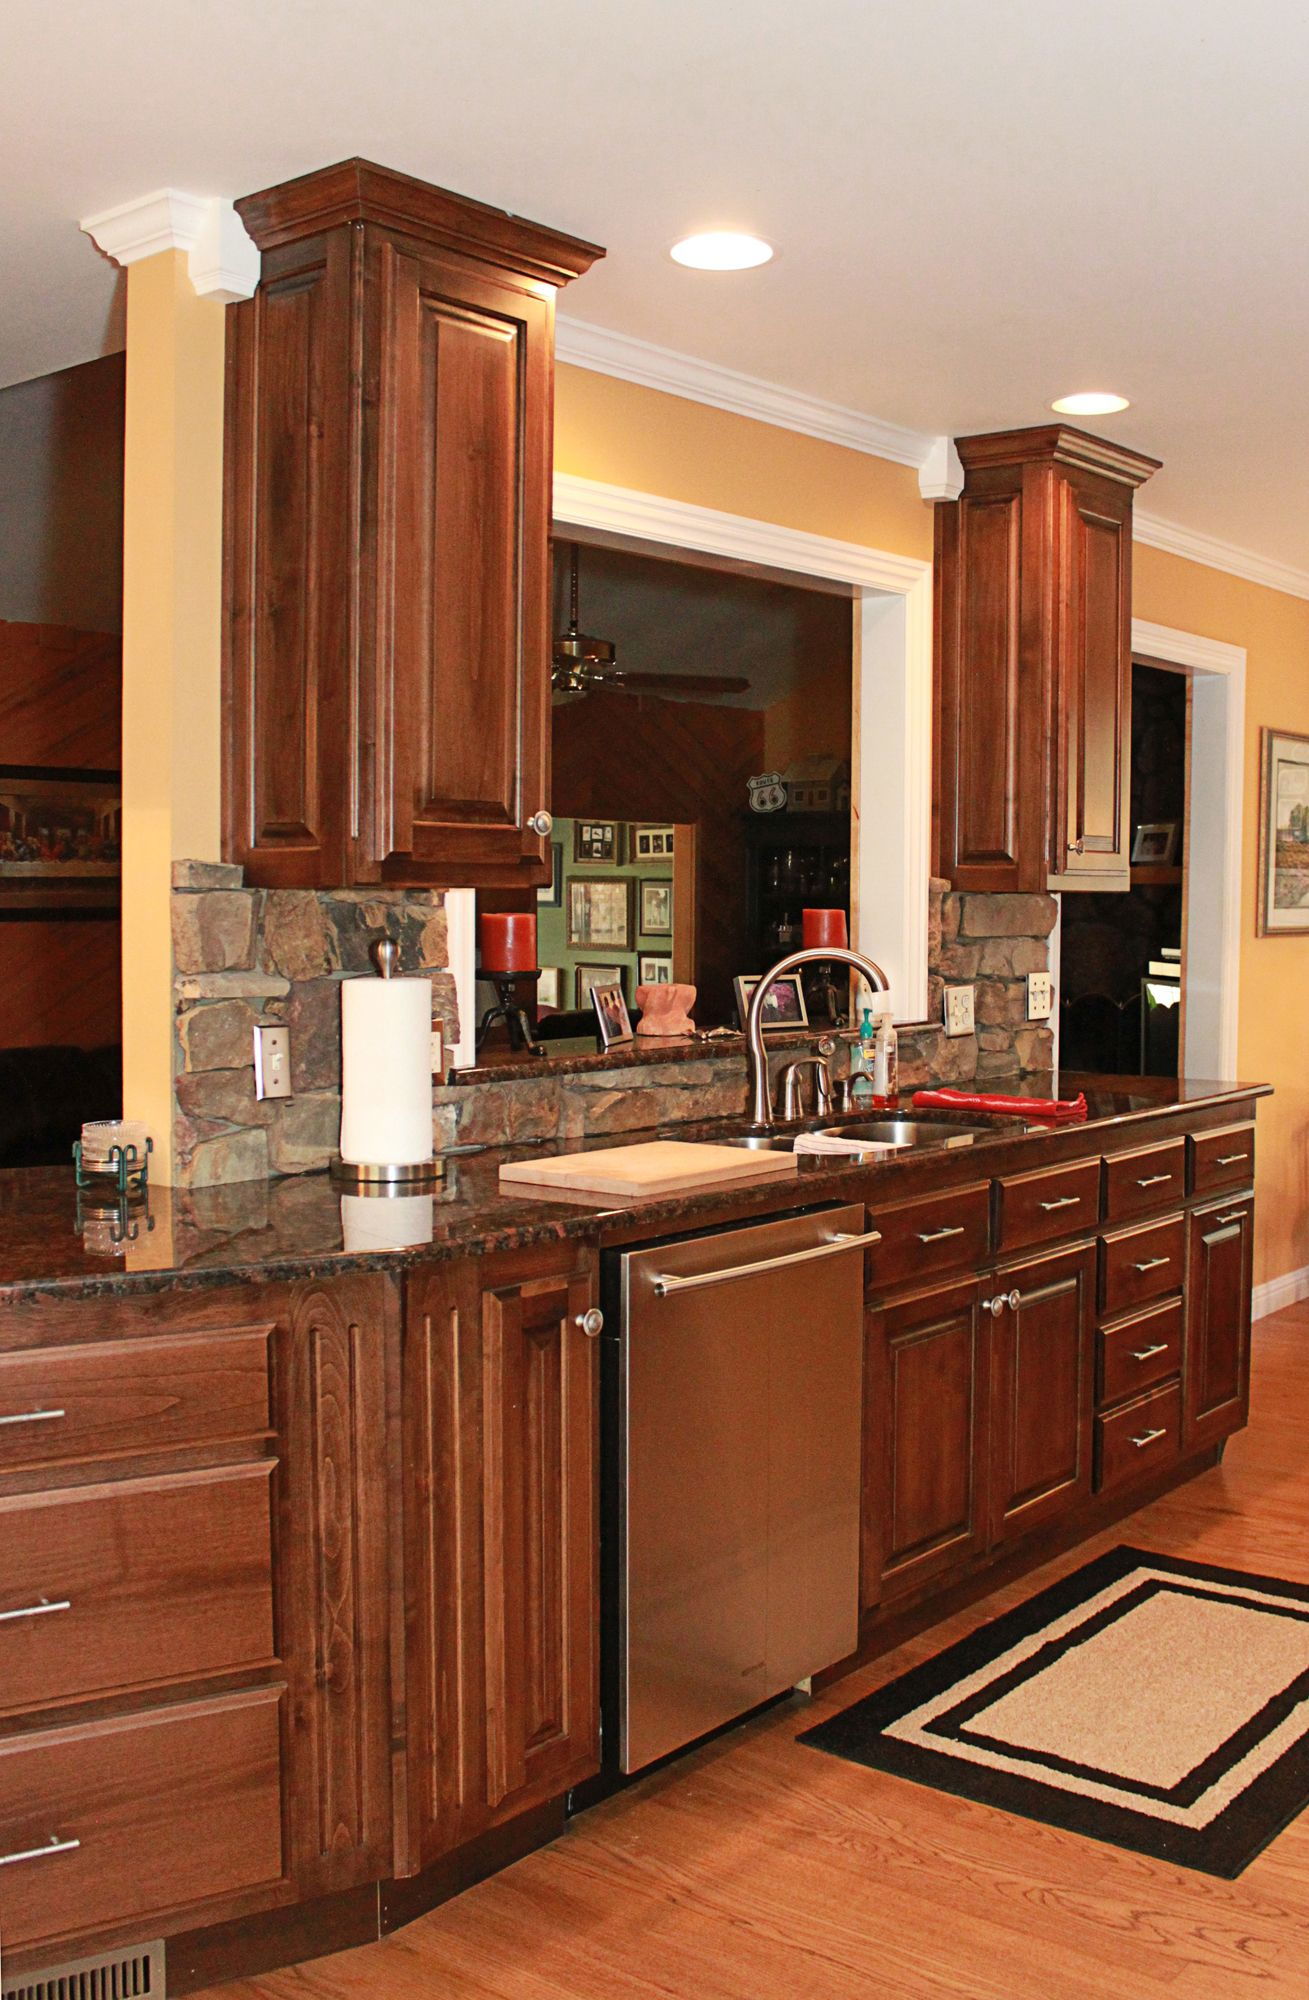 Pin by Cabinets Plus on Clear Alder Cabinets   Alder ...